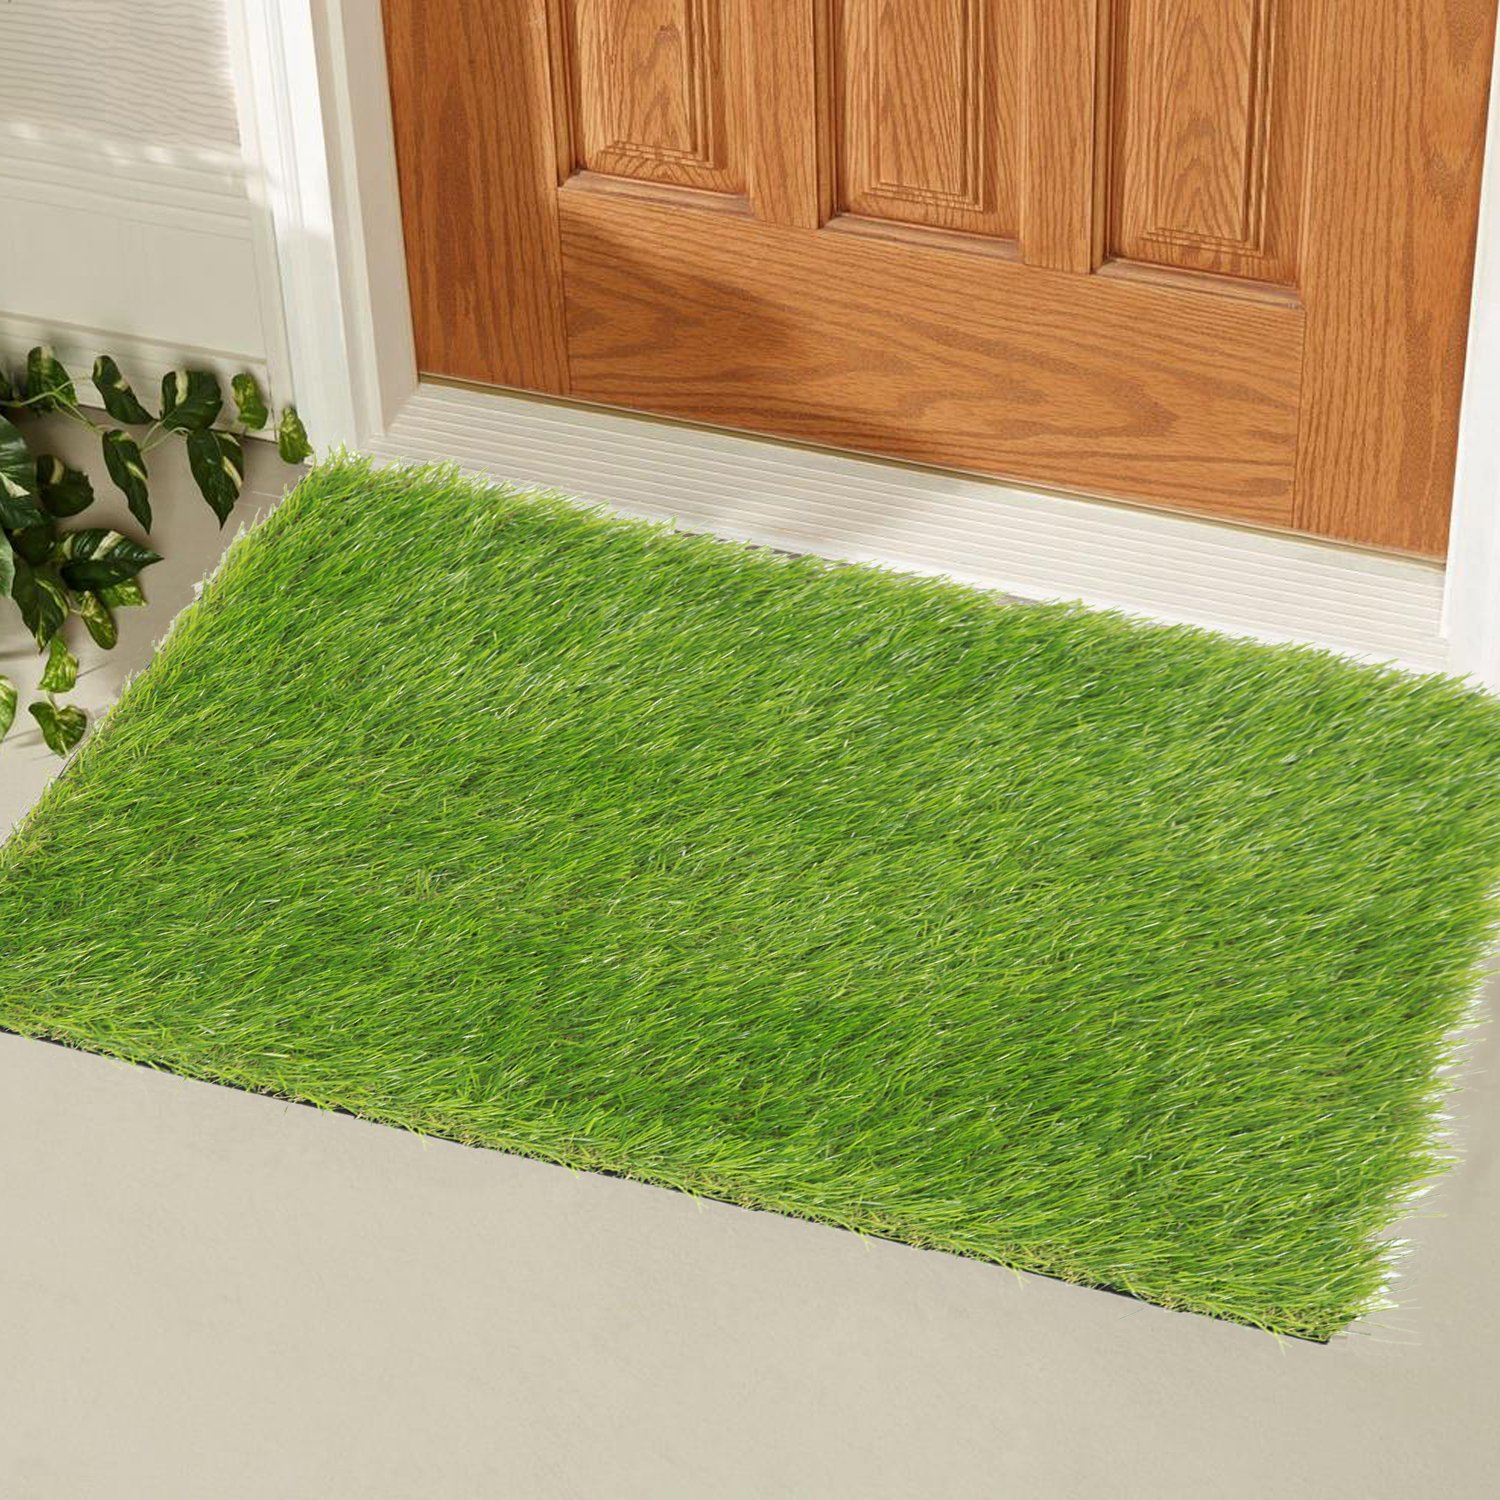 ECOMATRIX Artificial Grass Dog Training Mat Large Pet Turf Litter Lawn Pad Soft Synthetic Grass Area Rug Green Washable Fake Grass Carpet for Indoor Outdoor Kennel 39inch x 59inch